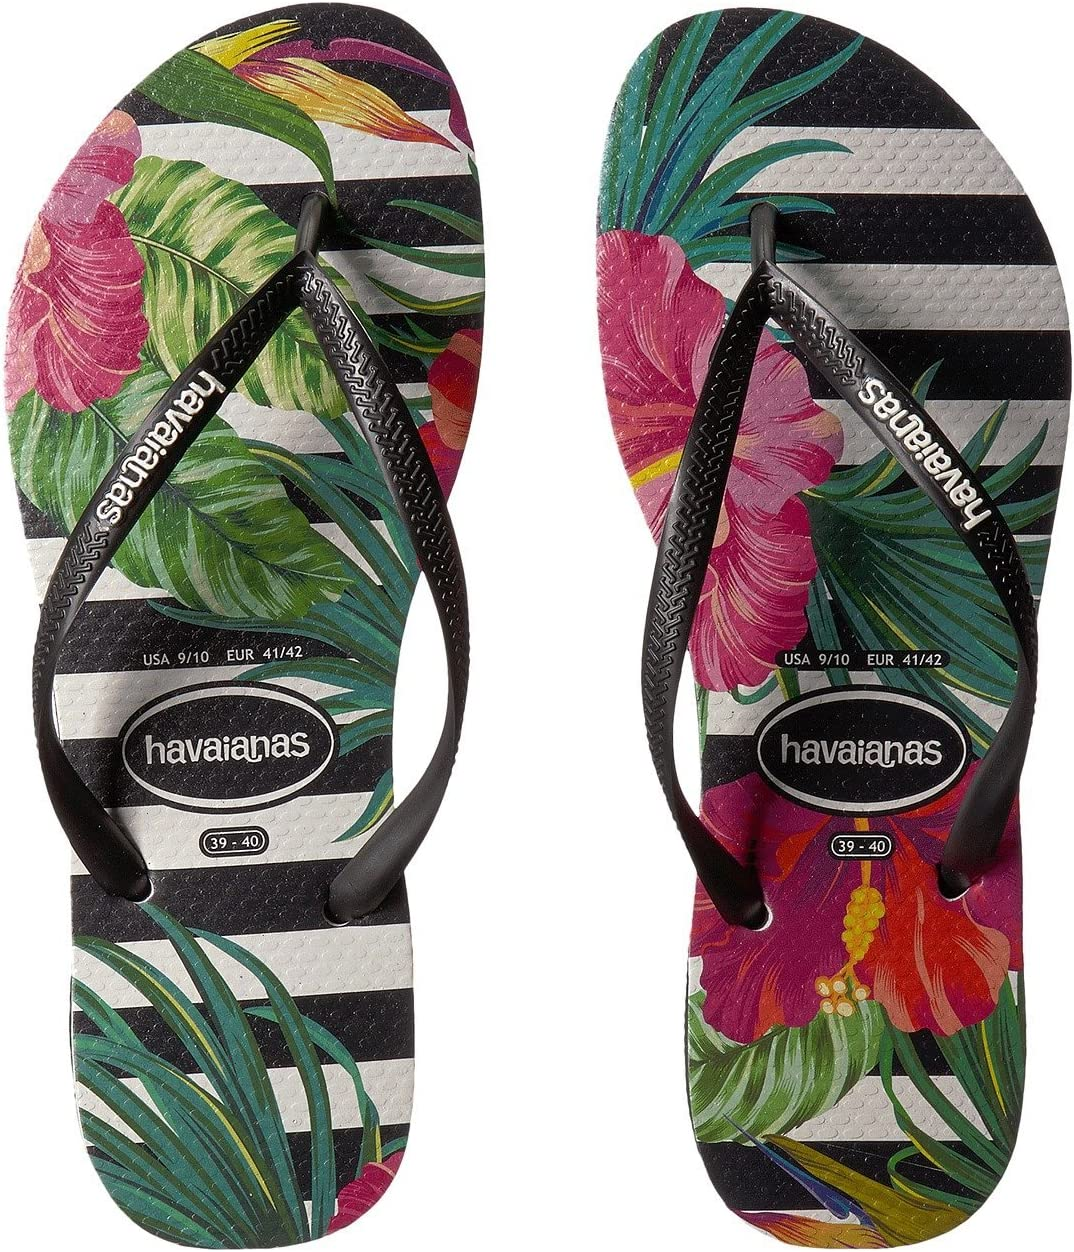 ce13c6a00c1e3 Havaianas Shoes   Accessories